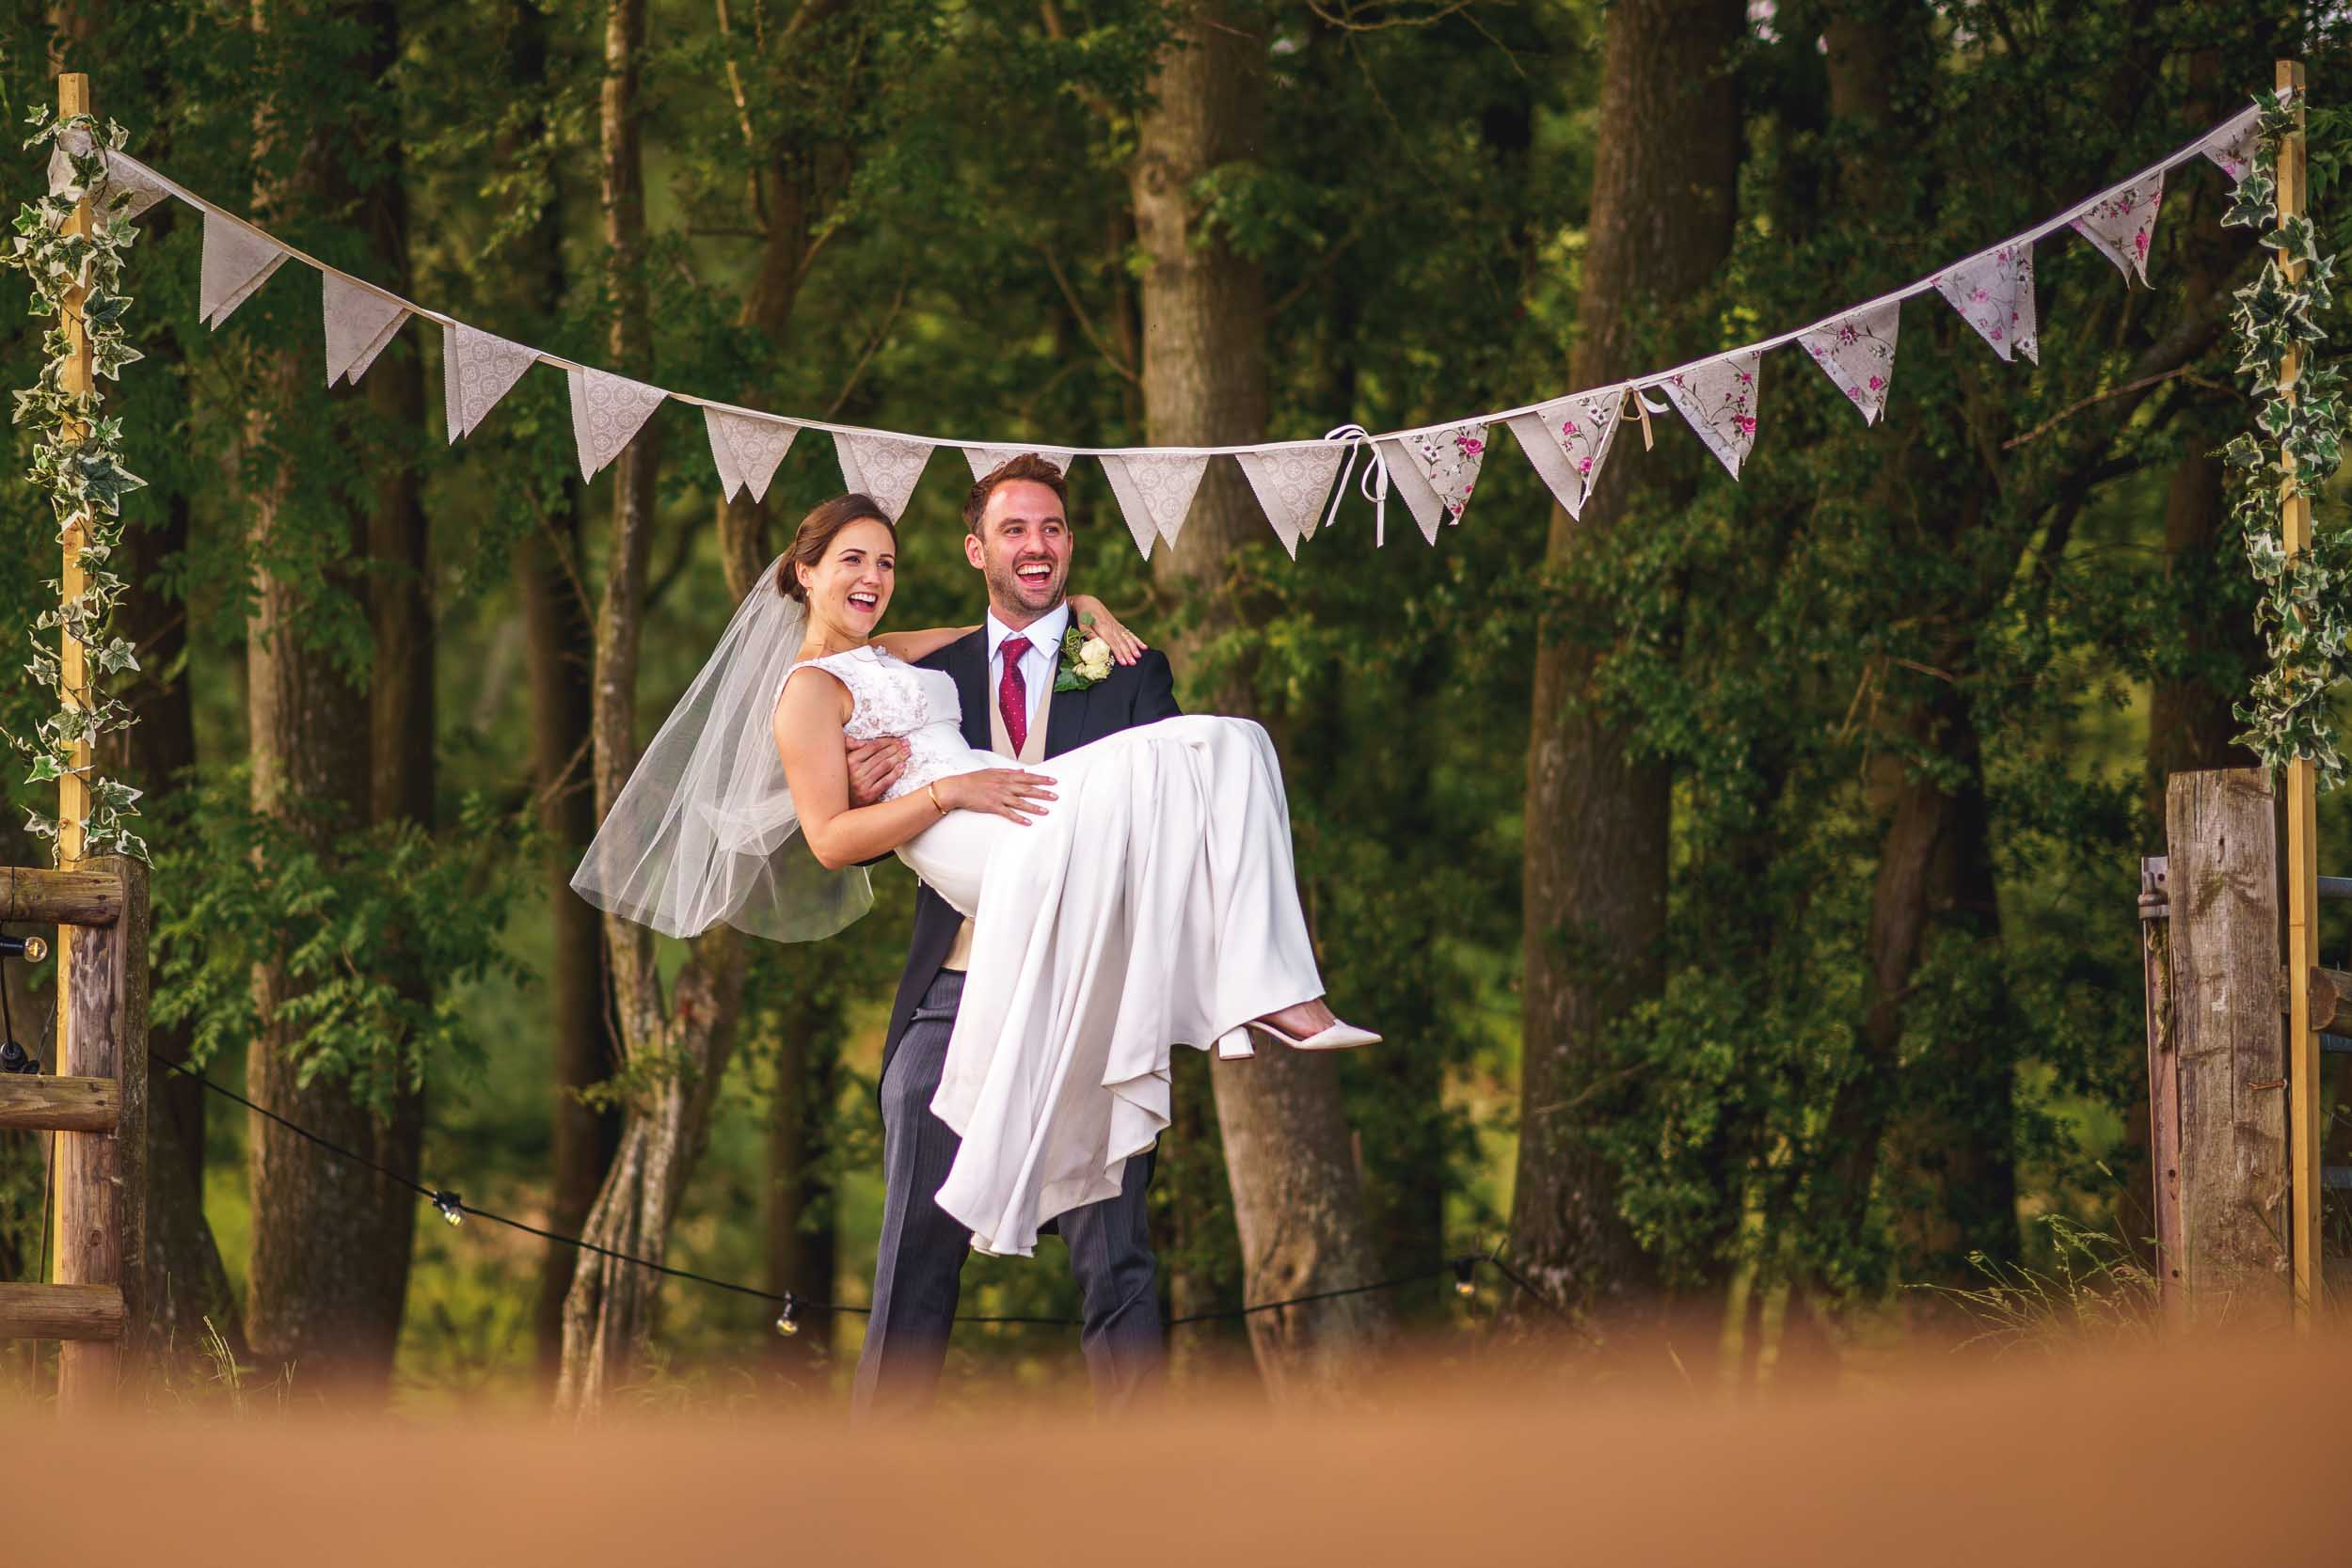 Wedding photographers in Herefordshire, Herefordshire Wedding, Wedding Photographer, Farm house Wedding, Marquee Wedding in Herefordshire,